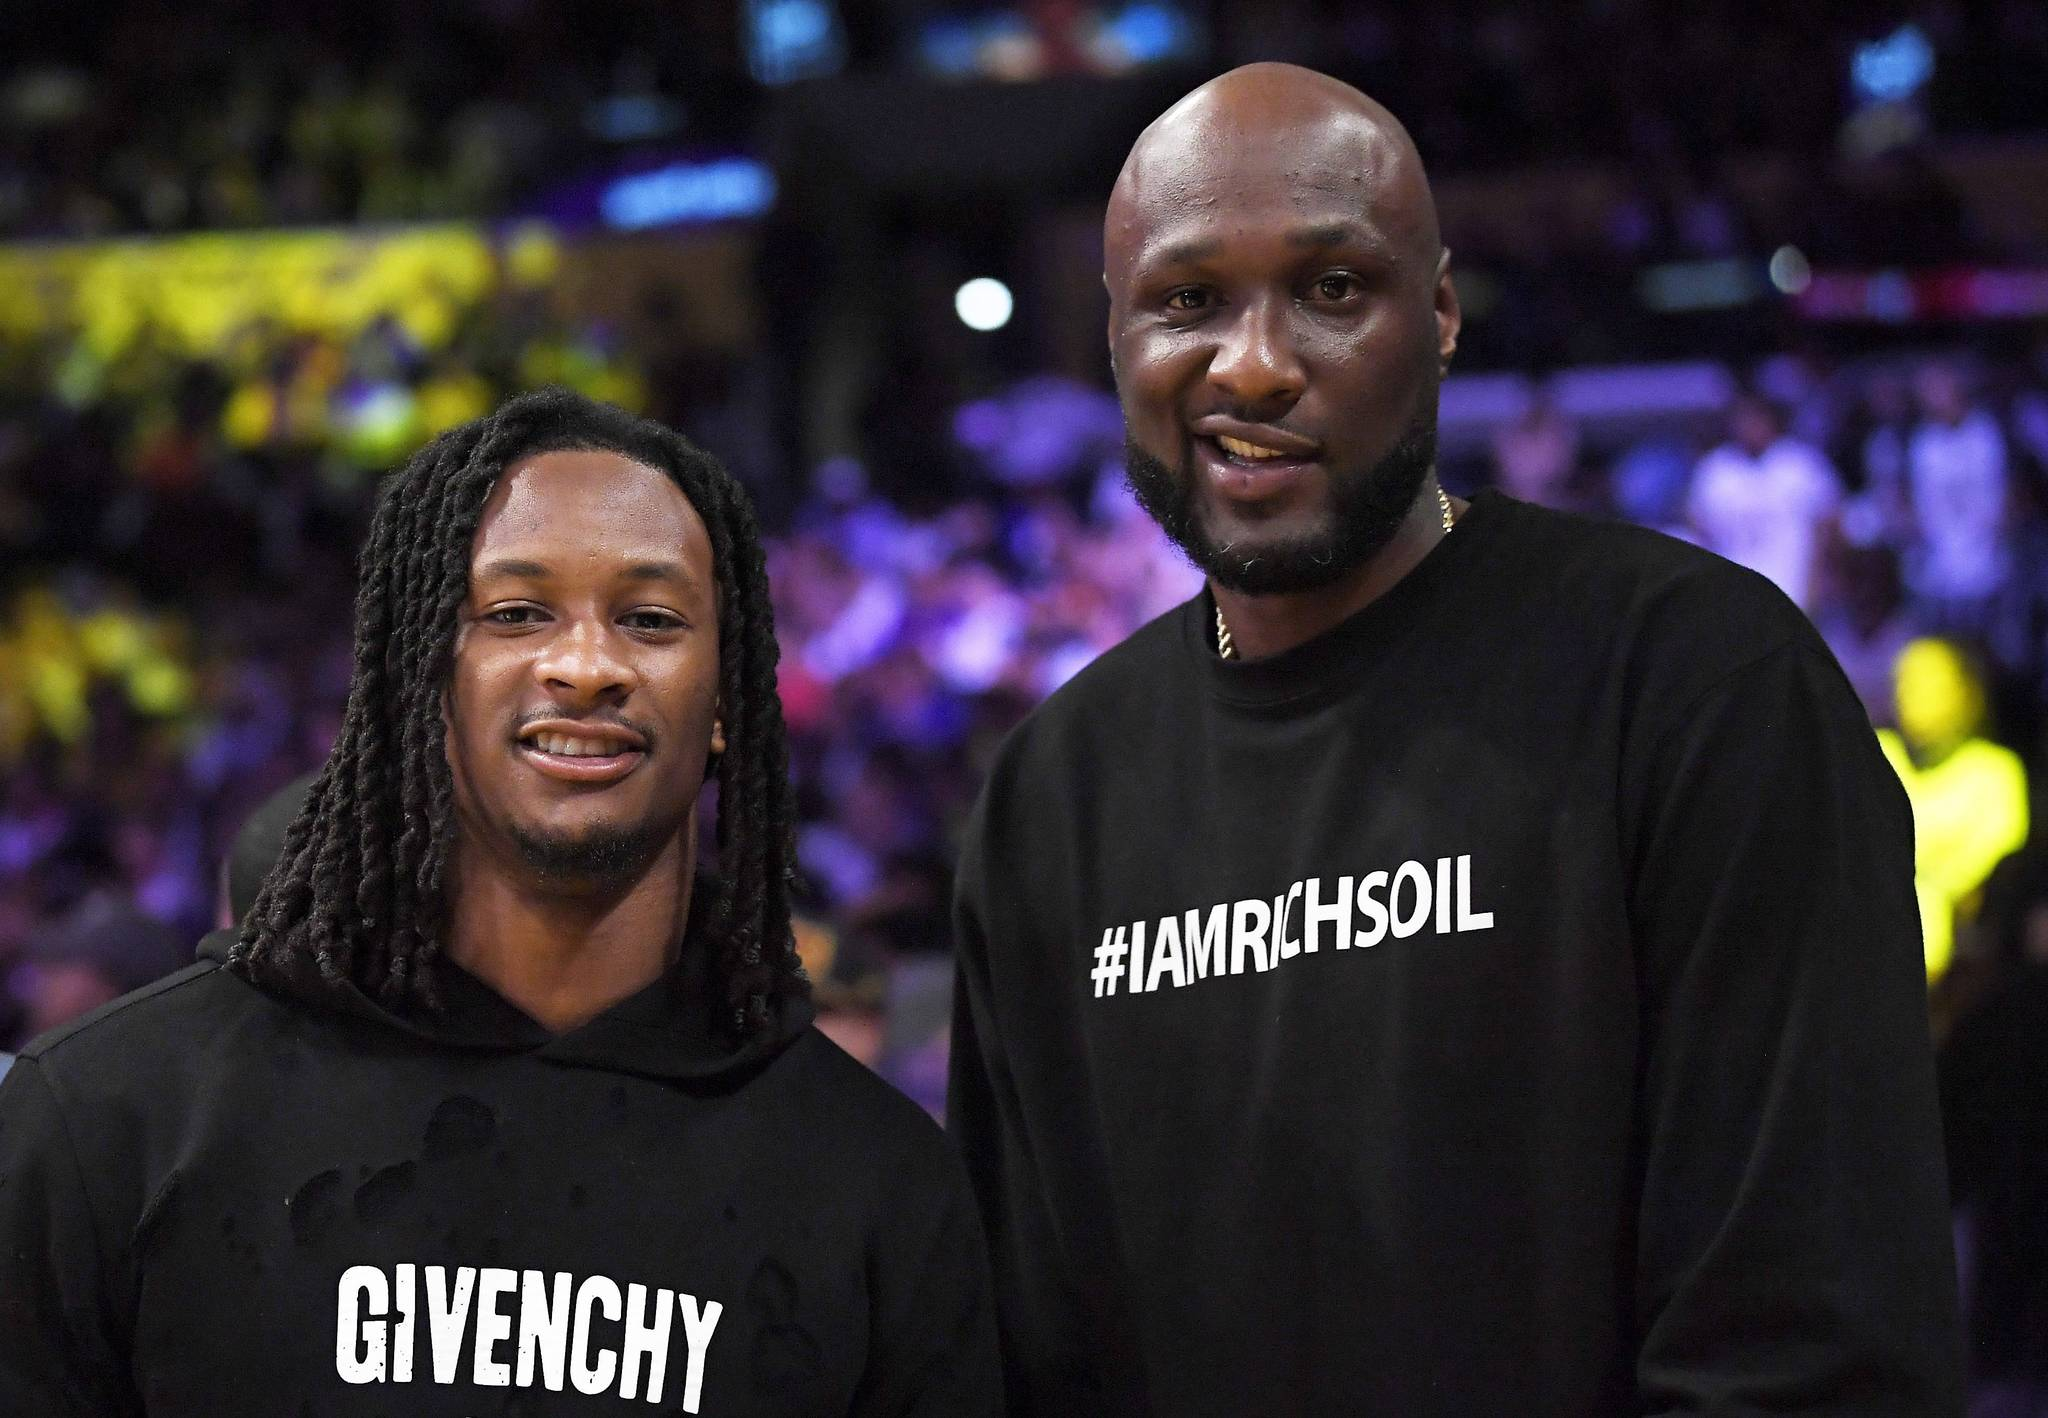 Los Angeles Rams running back Todd Gurley, left, poses with former NBA basketball player Lamar Odom during the second half of an NBA basketball game between the Los Angeles Lakers and the Cleveland Cavaliers, Sunday, March 11, 2018, in Los Angeles. The Lakers won 127-113. (AP Photo/Mark J. Terrill)